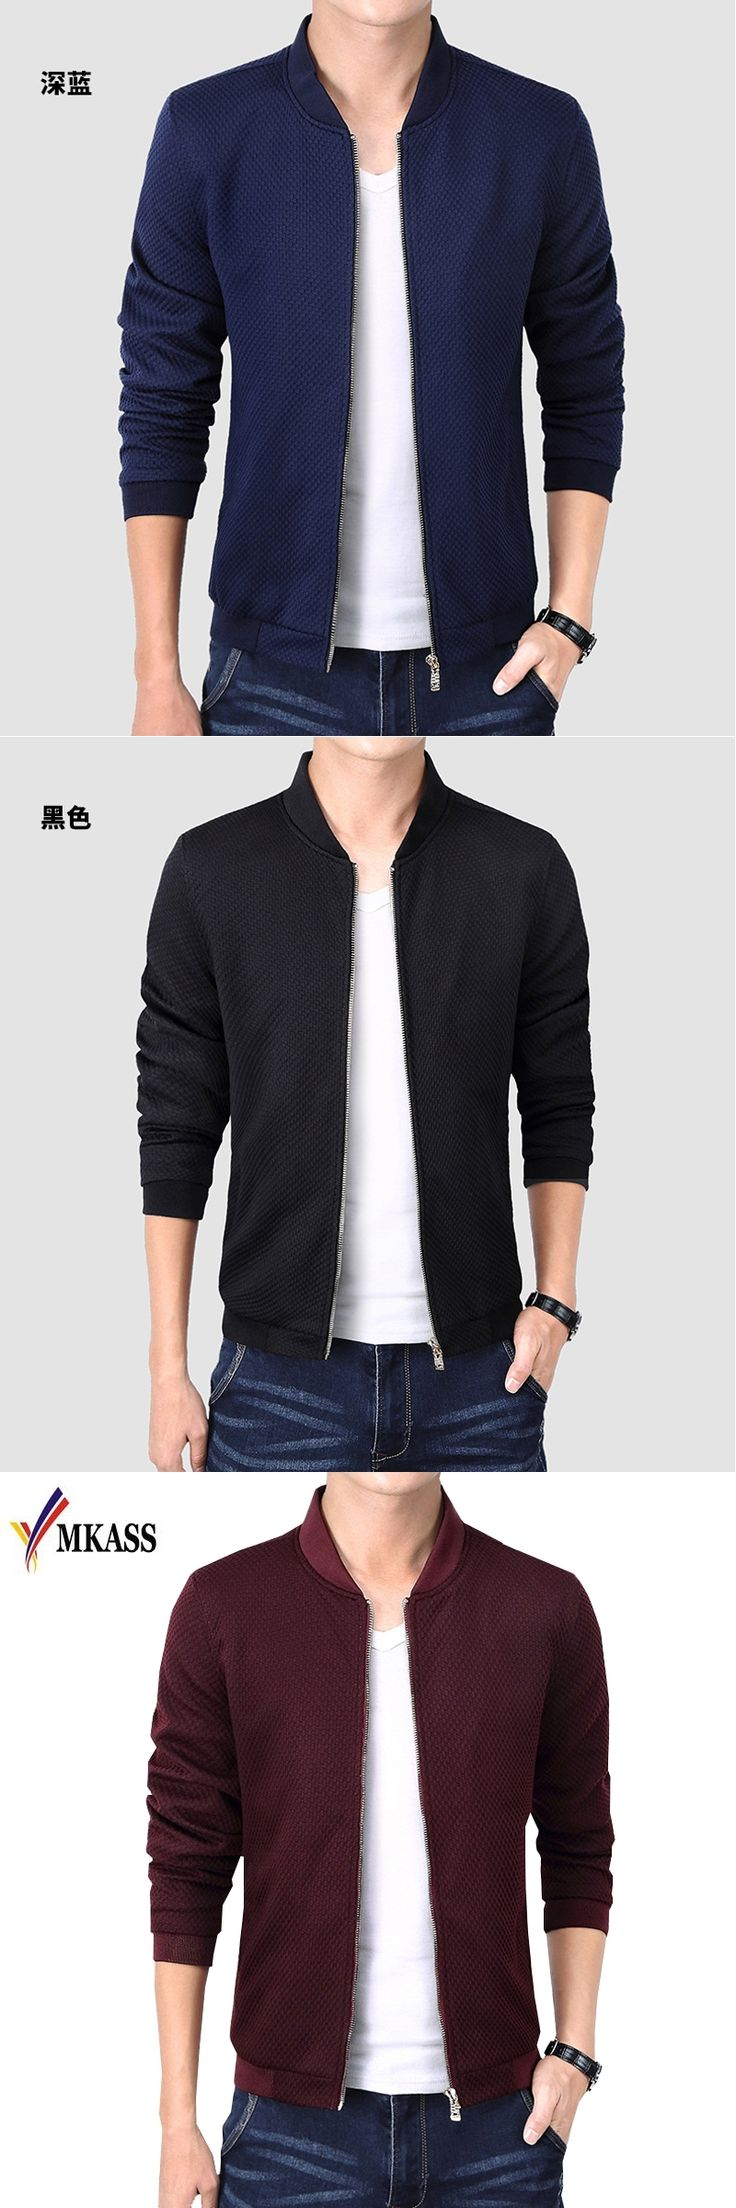 Hot Sale 2017 New Fashion Brand Jacket Men Clothes Trend College Slim Fit High-Quality Casual Mens Jackets And Coats M-4XL